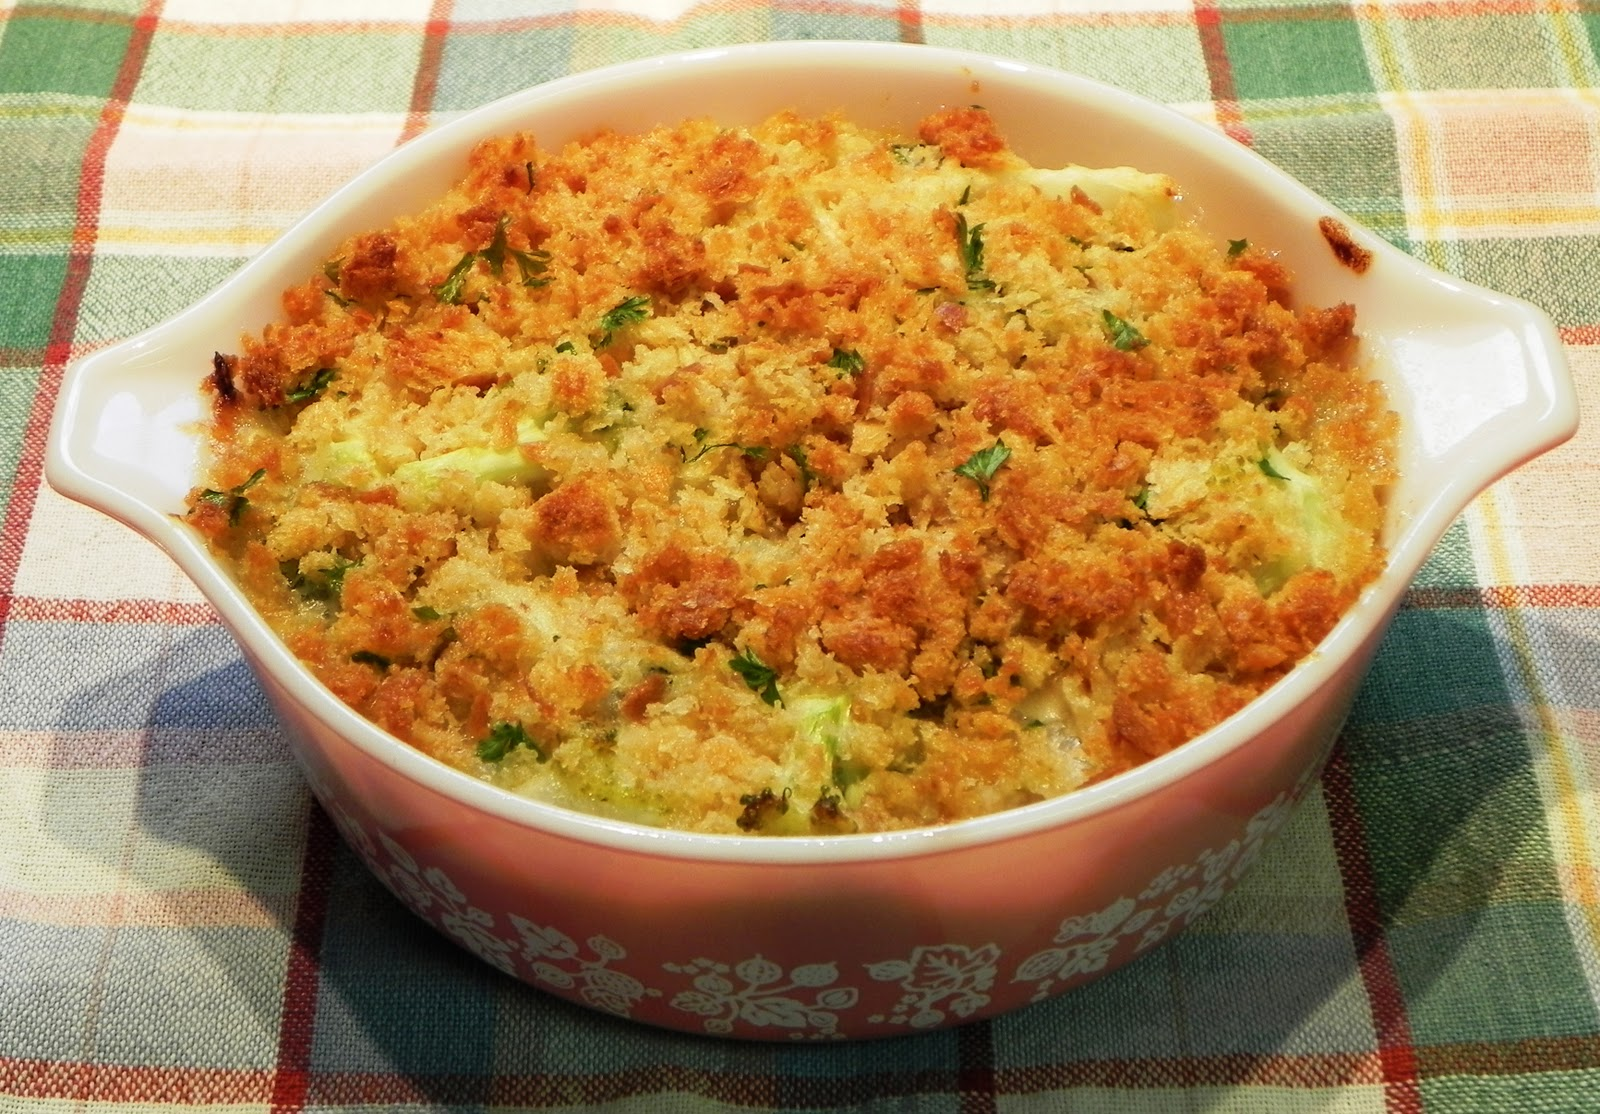 The Iowa Housewife: Broccoli and Onions Au Gratin